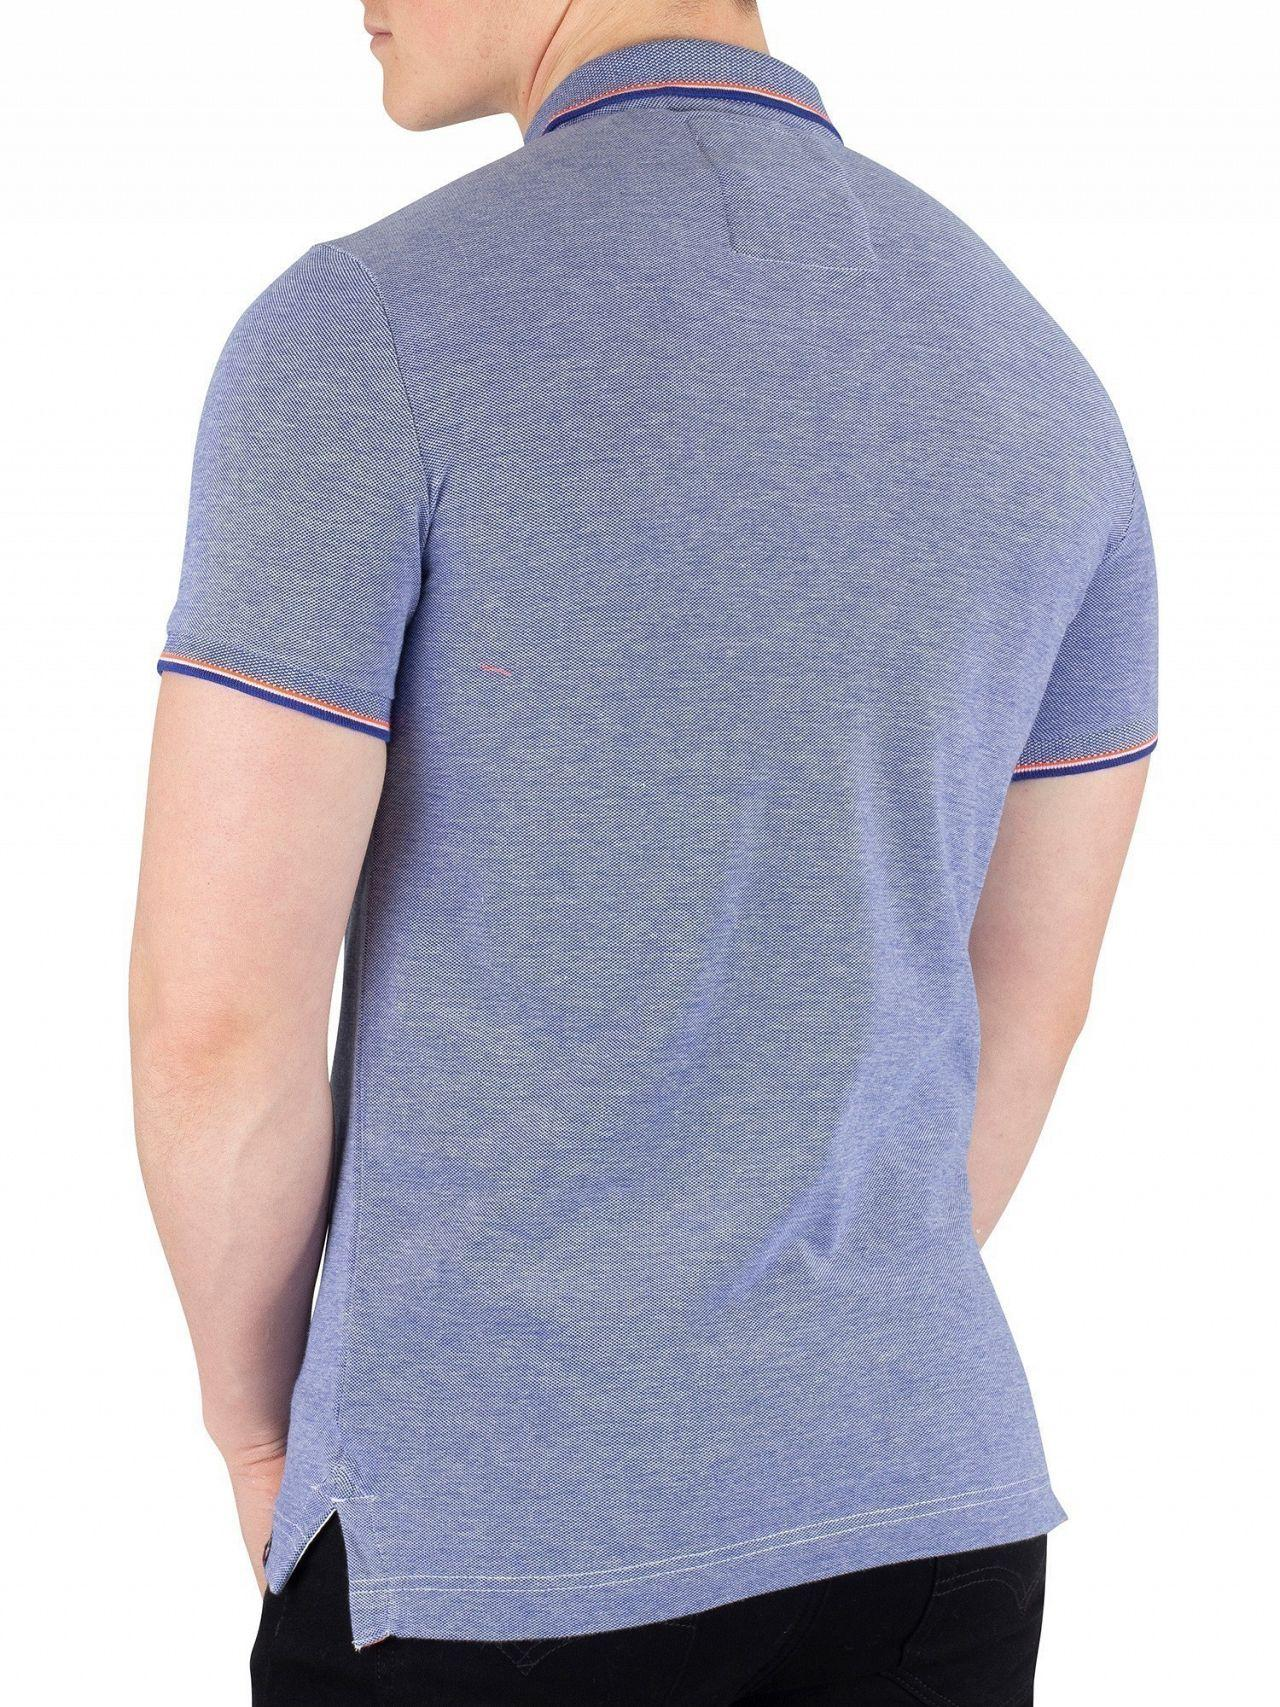 4f0931c46879 ... Cobalt/white Classic Poolside Pique Poloshirt for Men - Lyst. View  fullscreen